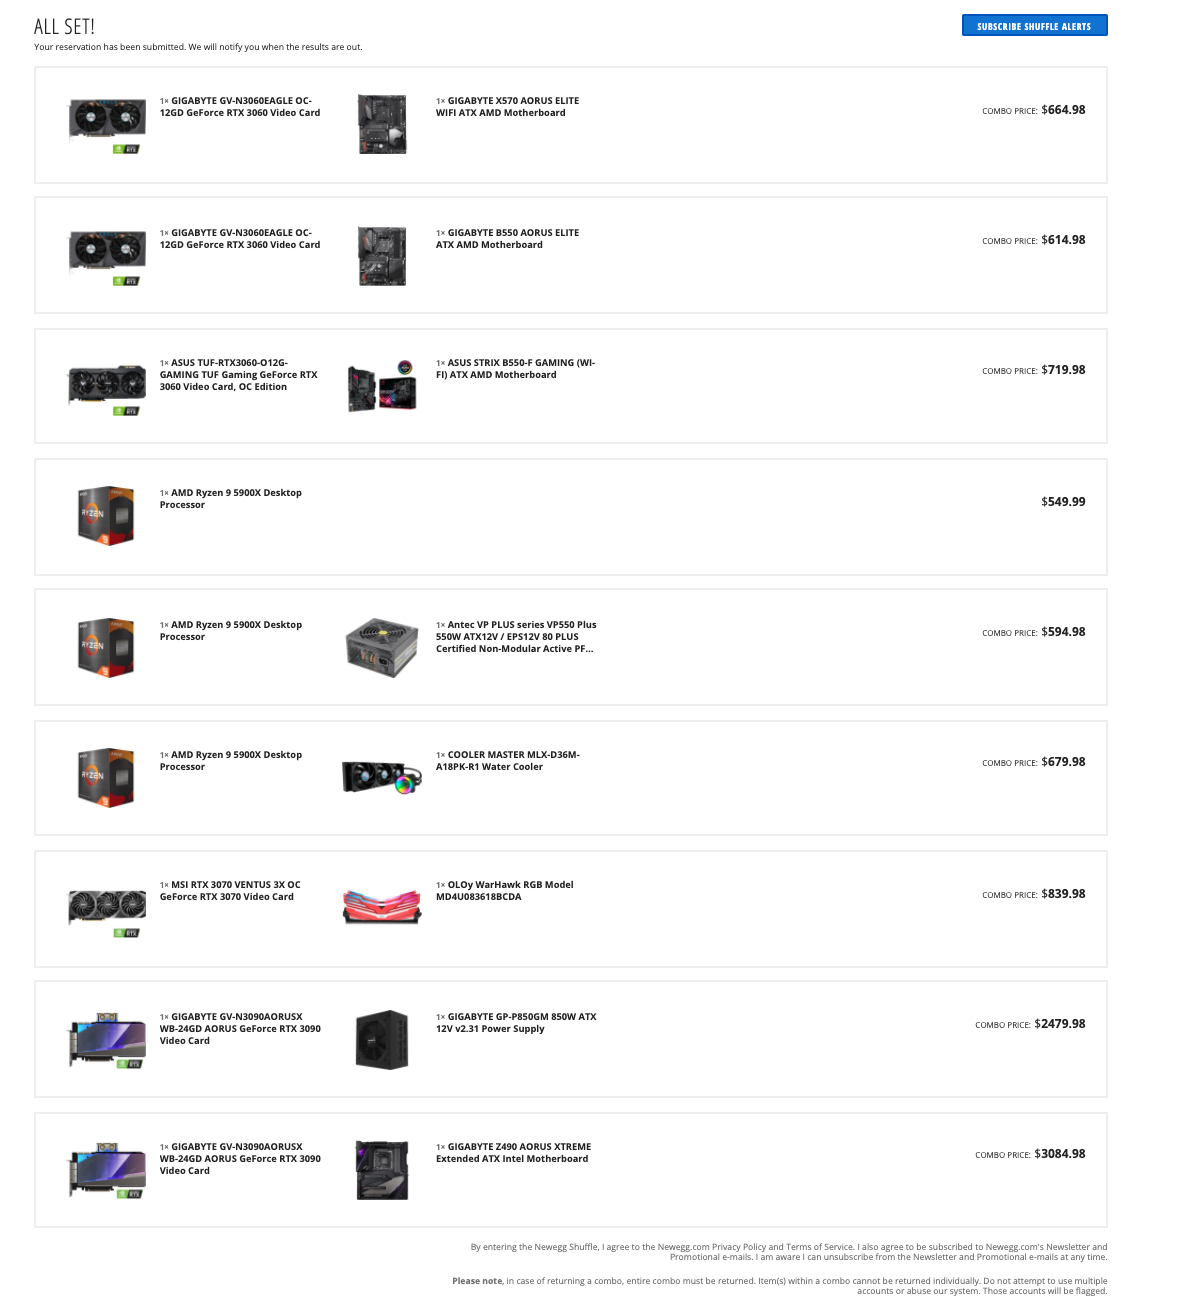 Selection confirmation of NVIDIA and AMD graphics cards in Newegg Shuffle